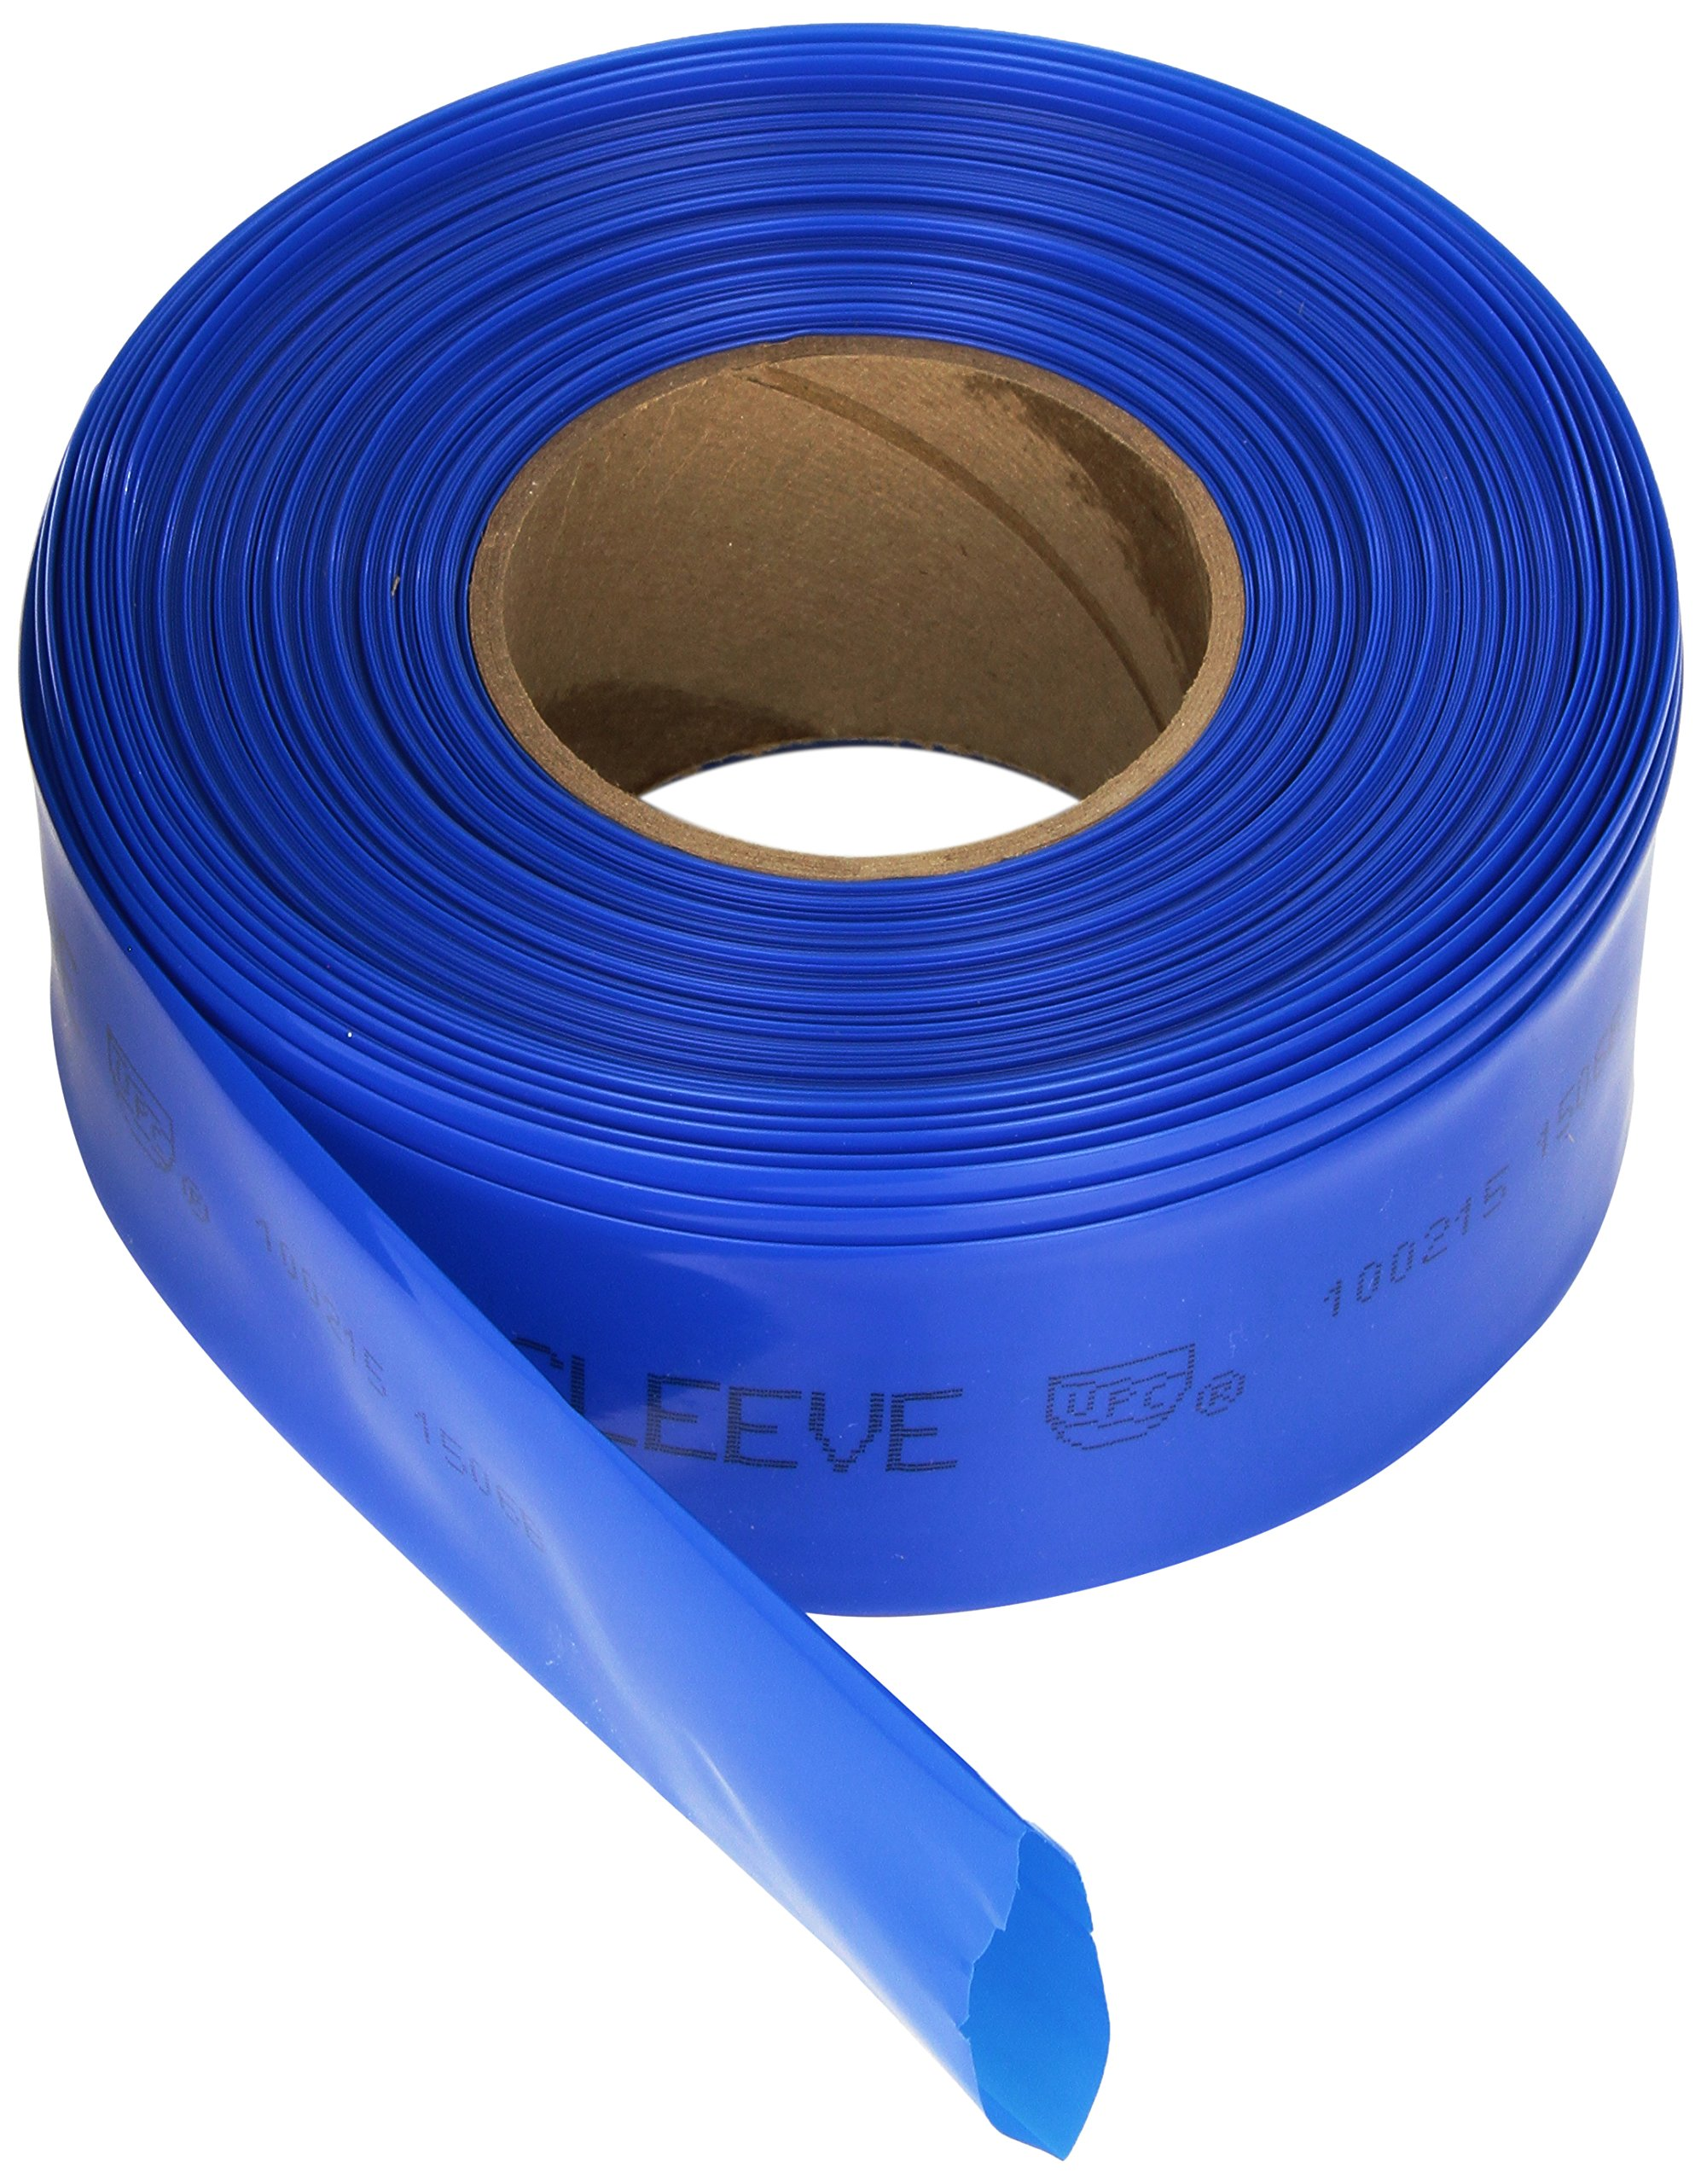 Water Tite 86262 Pipe Sleeving, 200Ft Length, Blue by EZ-Flo